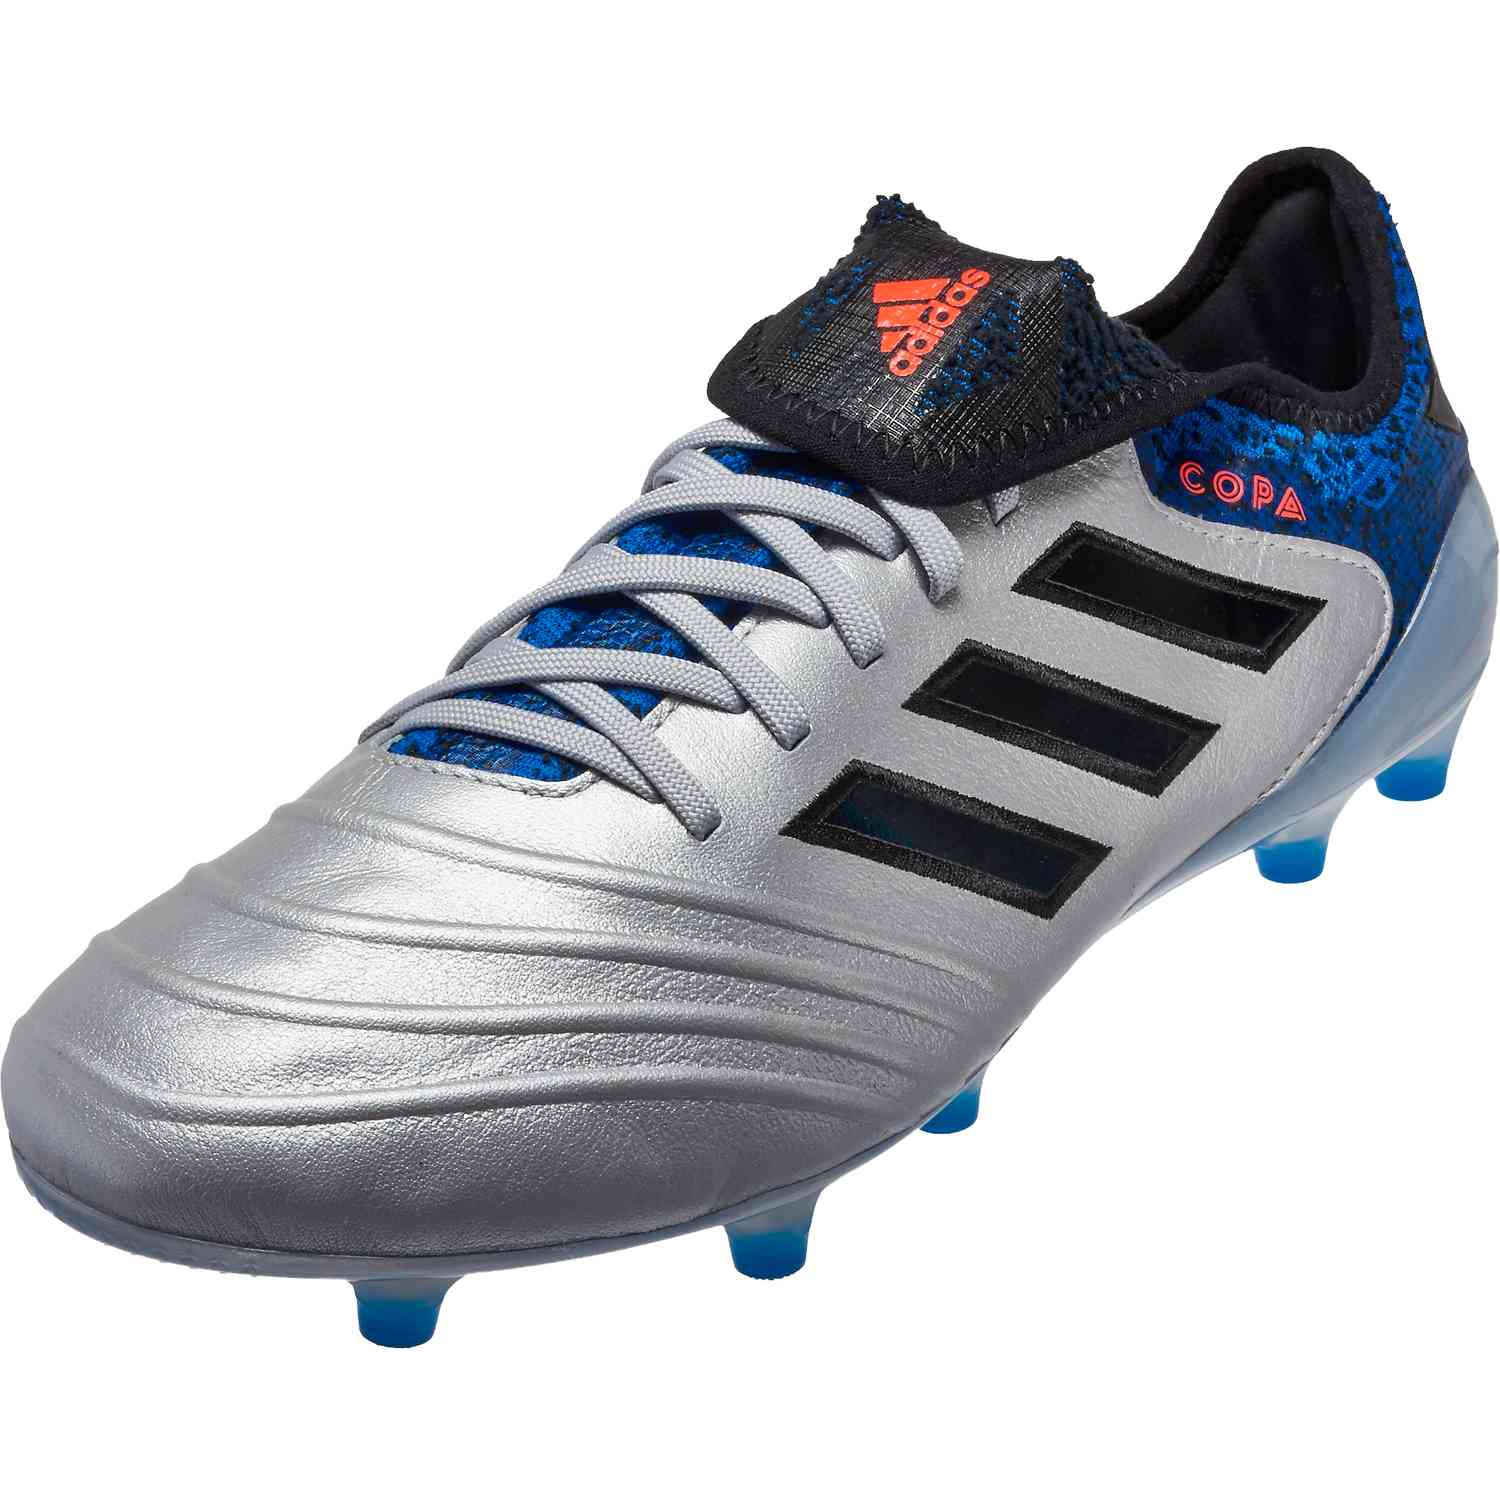 2fa619a957b adidas Copa 18.1 FG - Silver Metallic Black Football Blue - SoccerPro